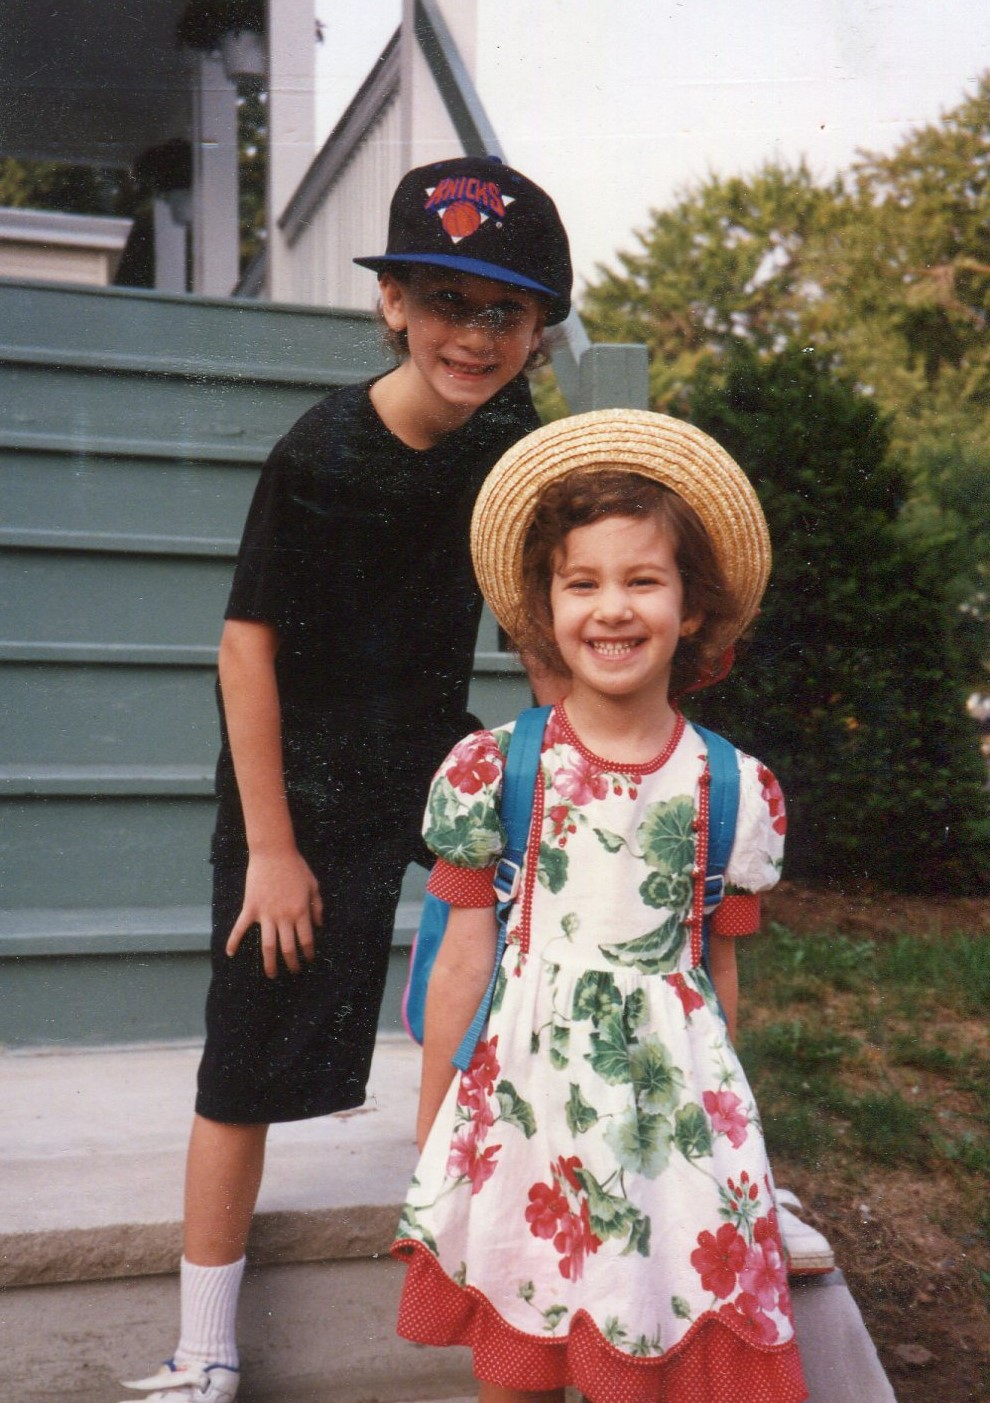 1st day of Kindergarten with Hilton